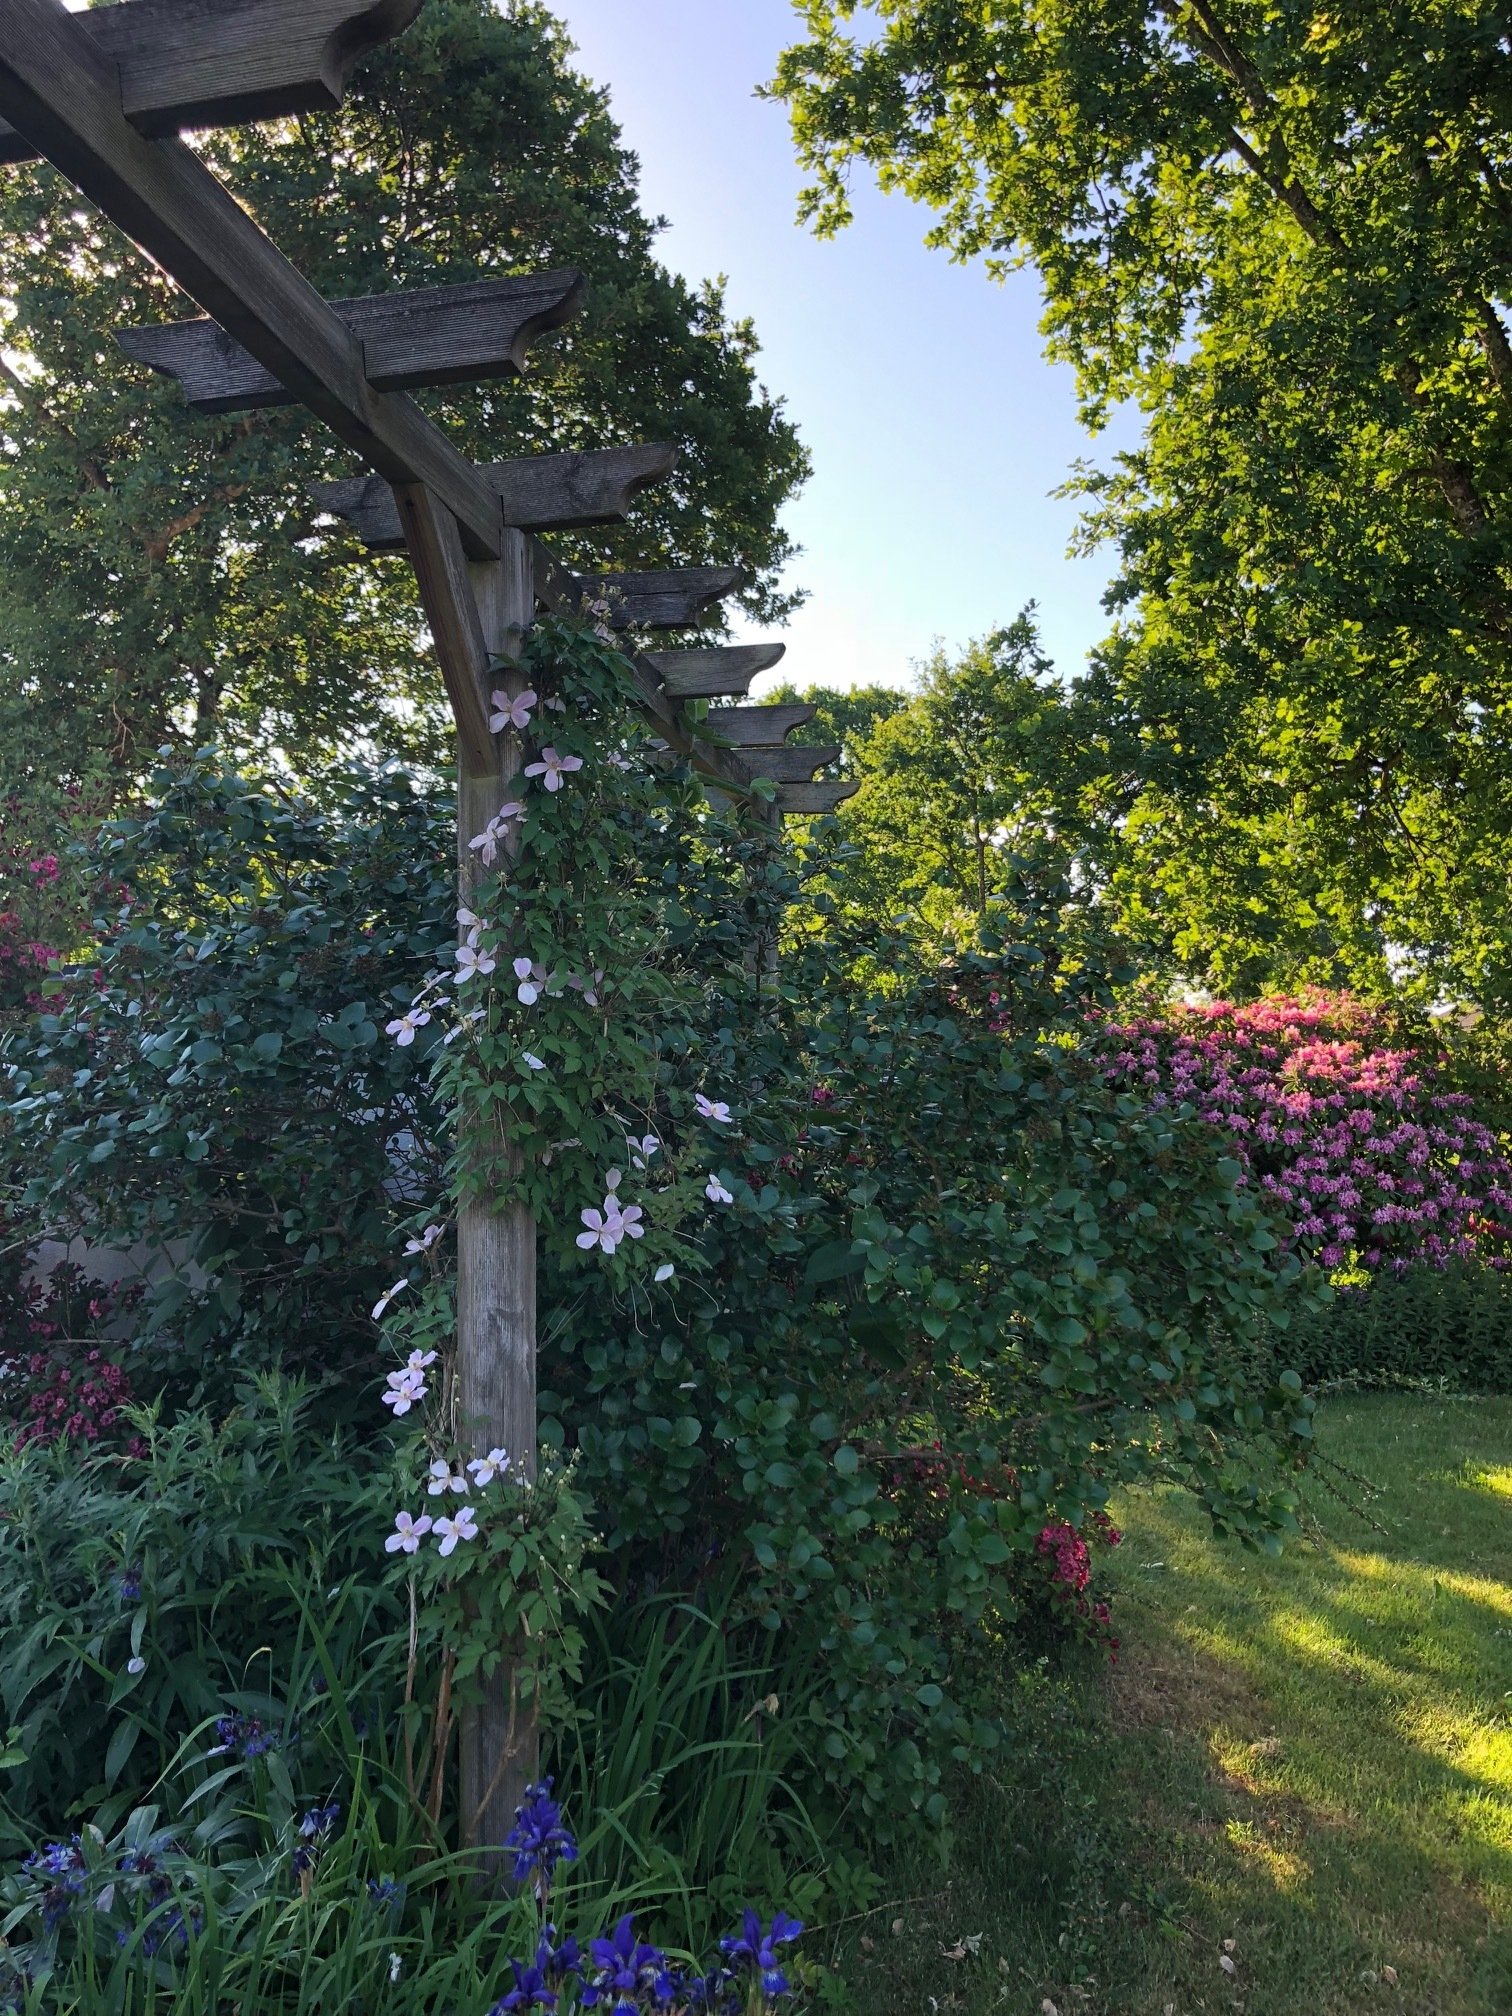 The garden is alive with flowers, birds and insects.Arild, Sweden.